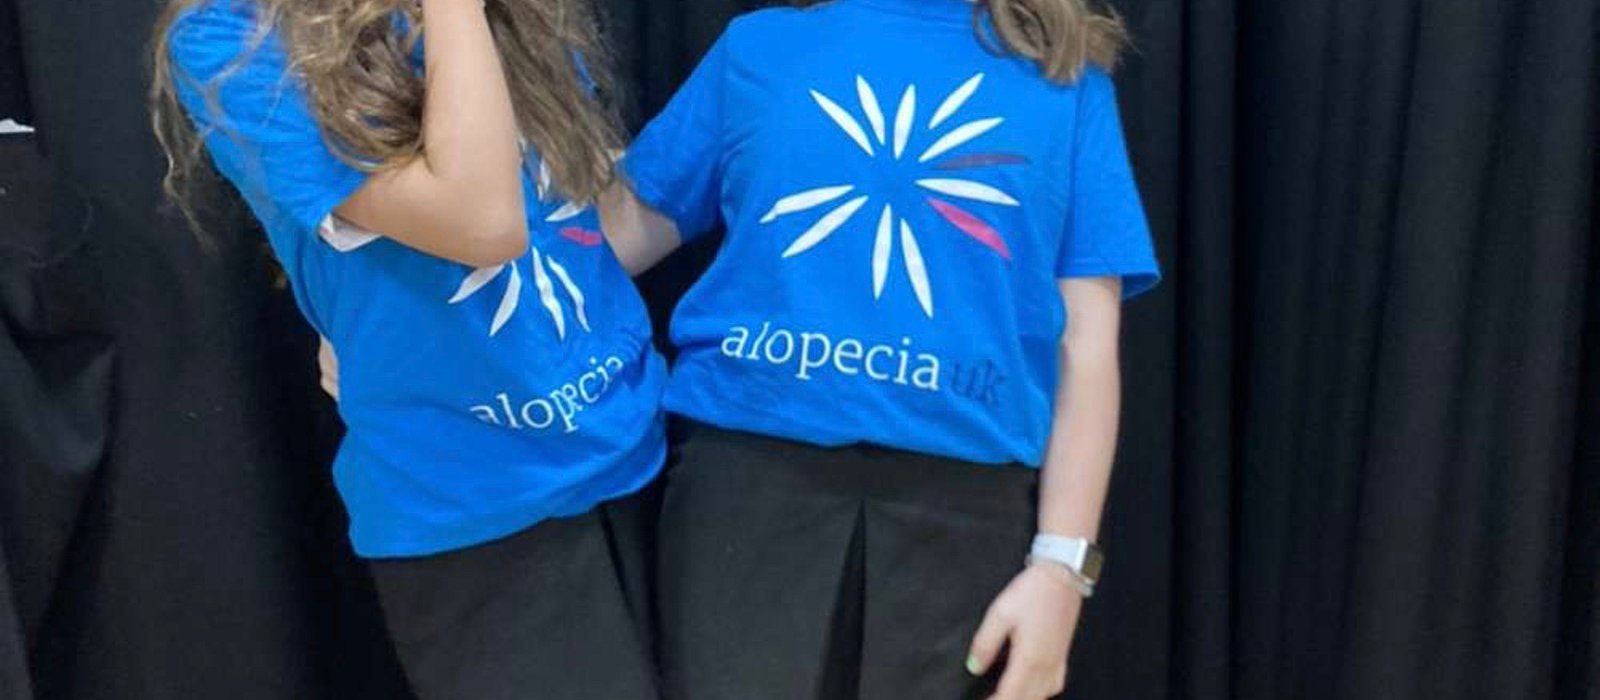 Molly and Hannah's fundraising page for Alopecia UK